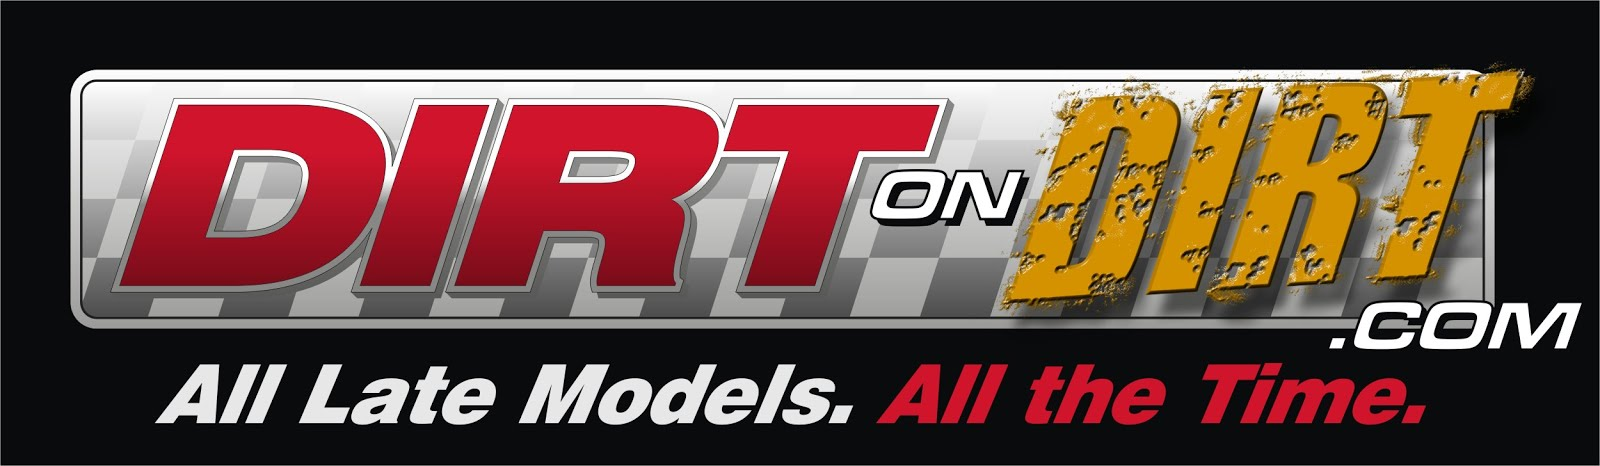 Are You A Dirt Late Model Fan?